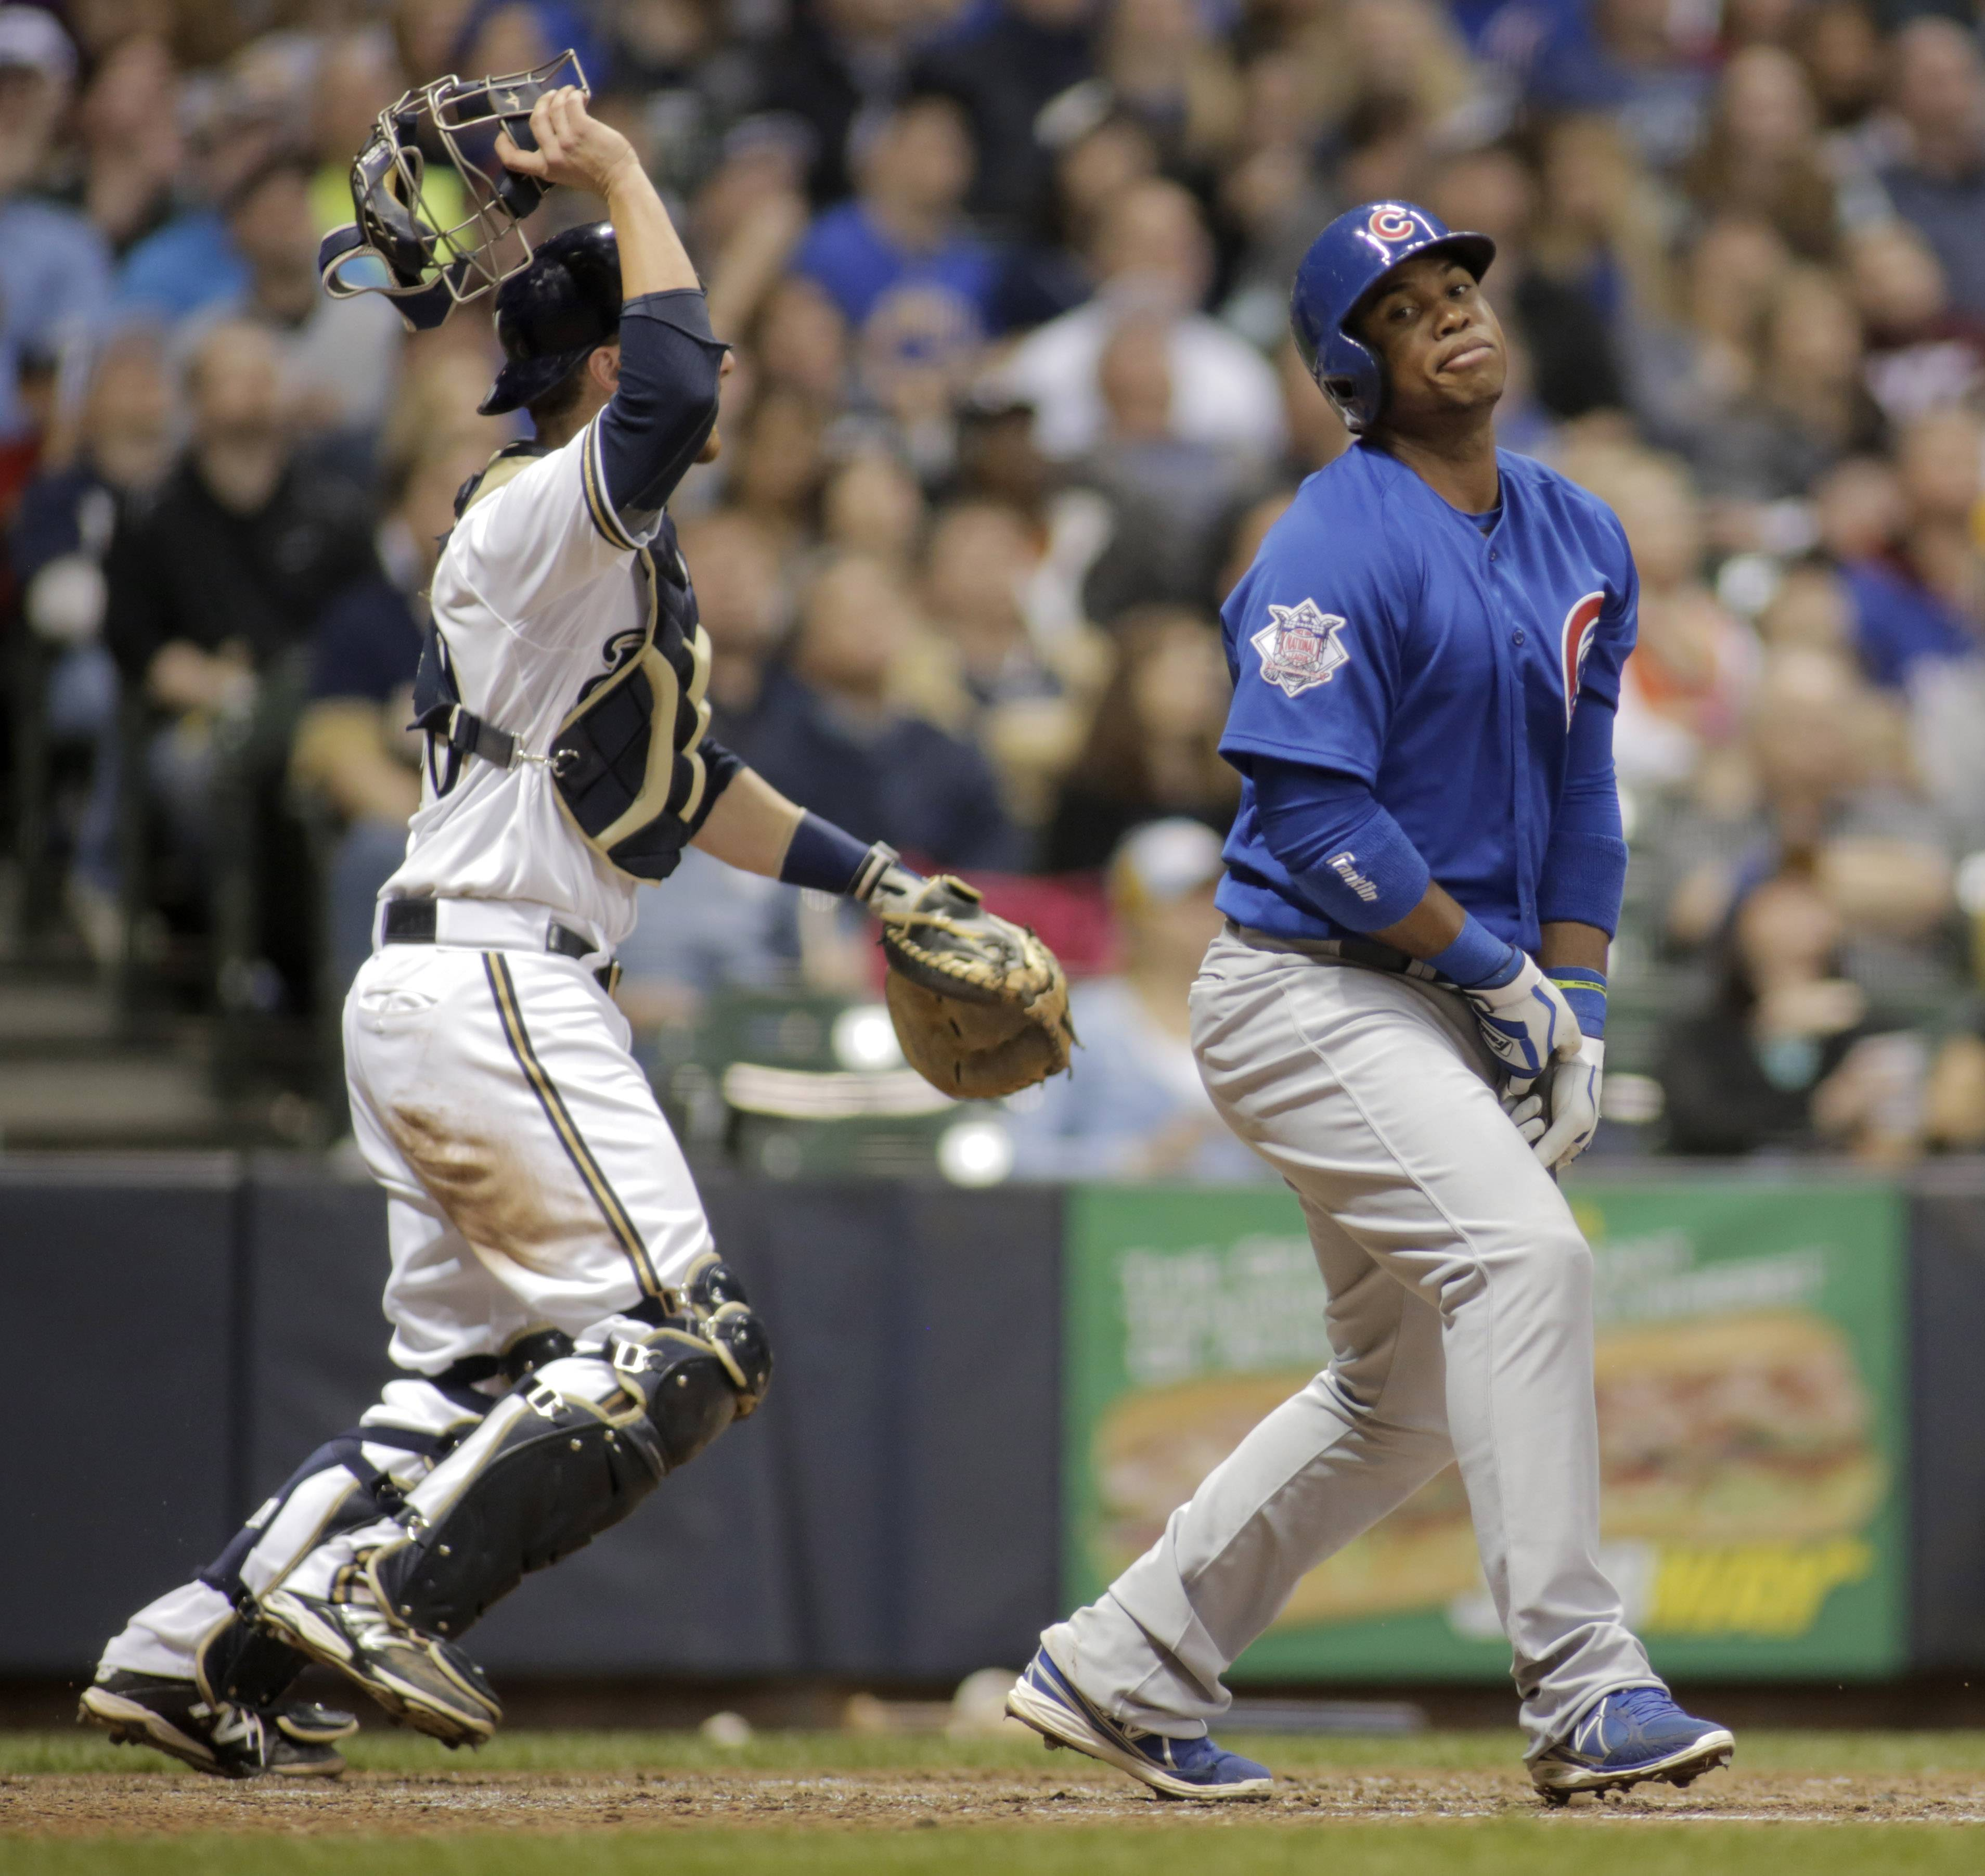 Cubs third baseman Luis Valbuena reacts after popping out against the Milwaukee Brewers during the sixth inning of a baseball game Friday, April 25, 2014, in Milwaukee.